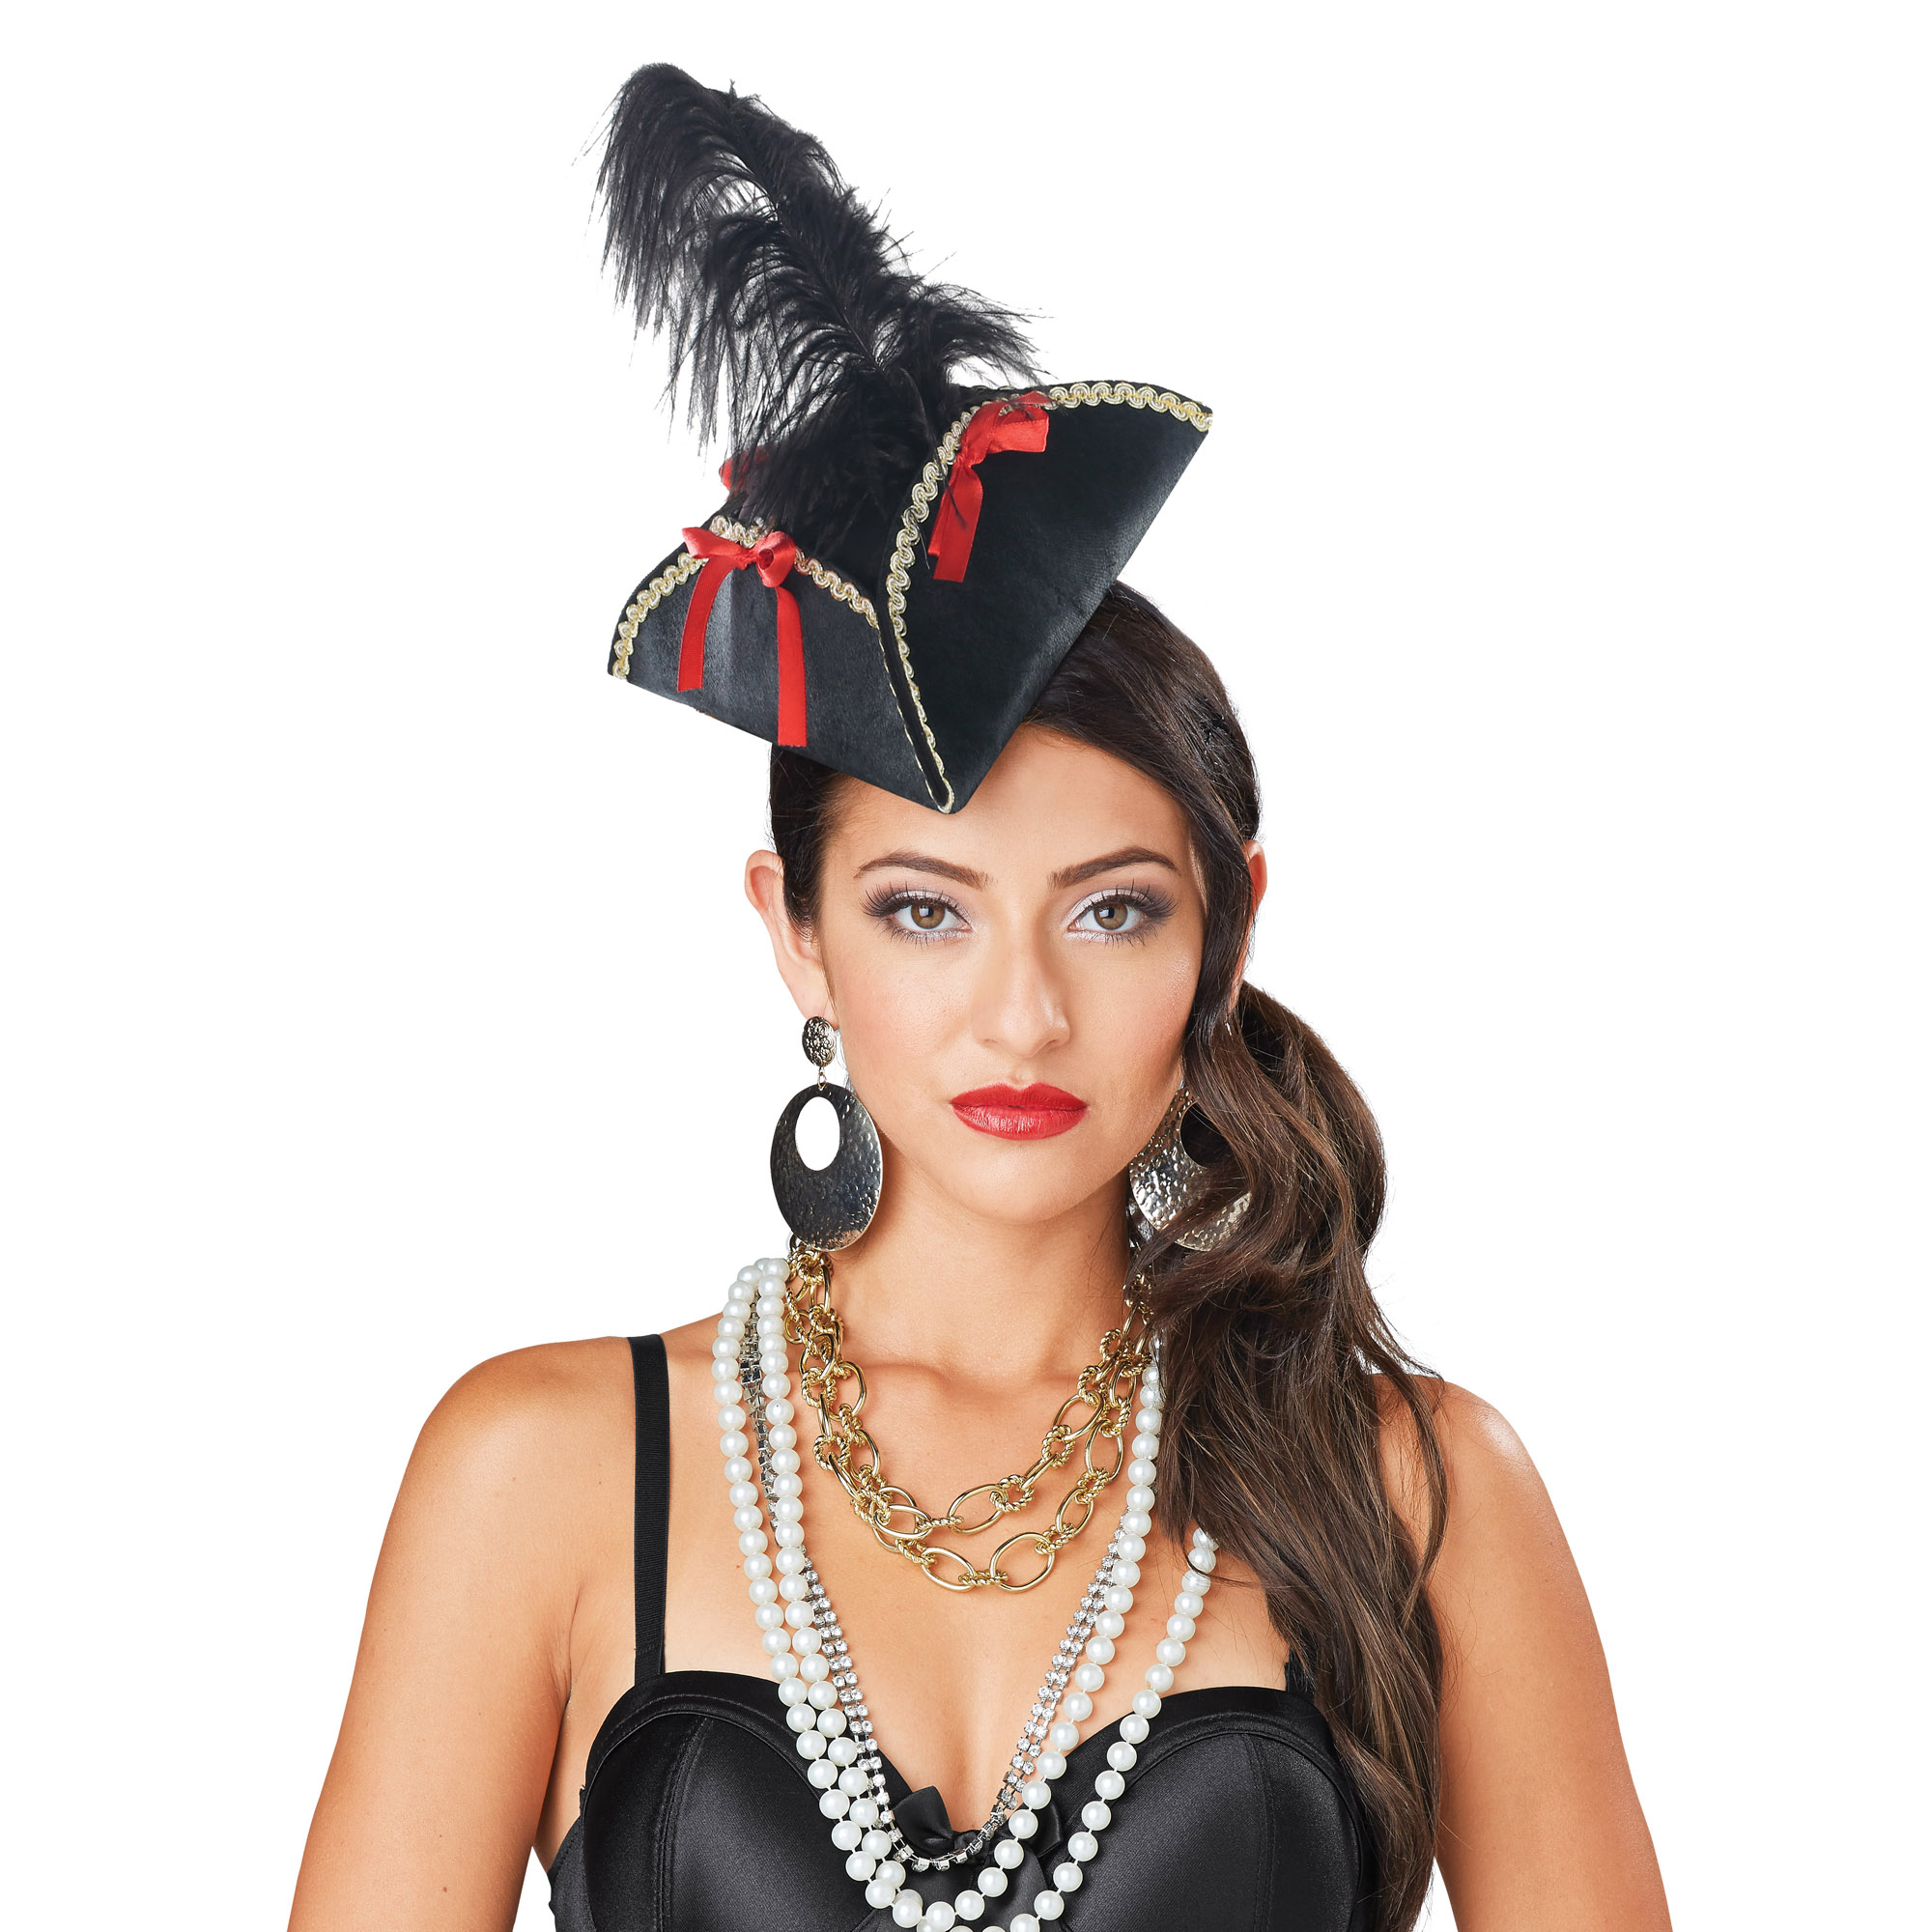 Deluxe Mini Pirate Tricorn Hat With Feather by Wal-Mart Stores, Inc.